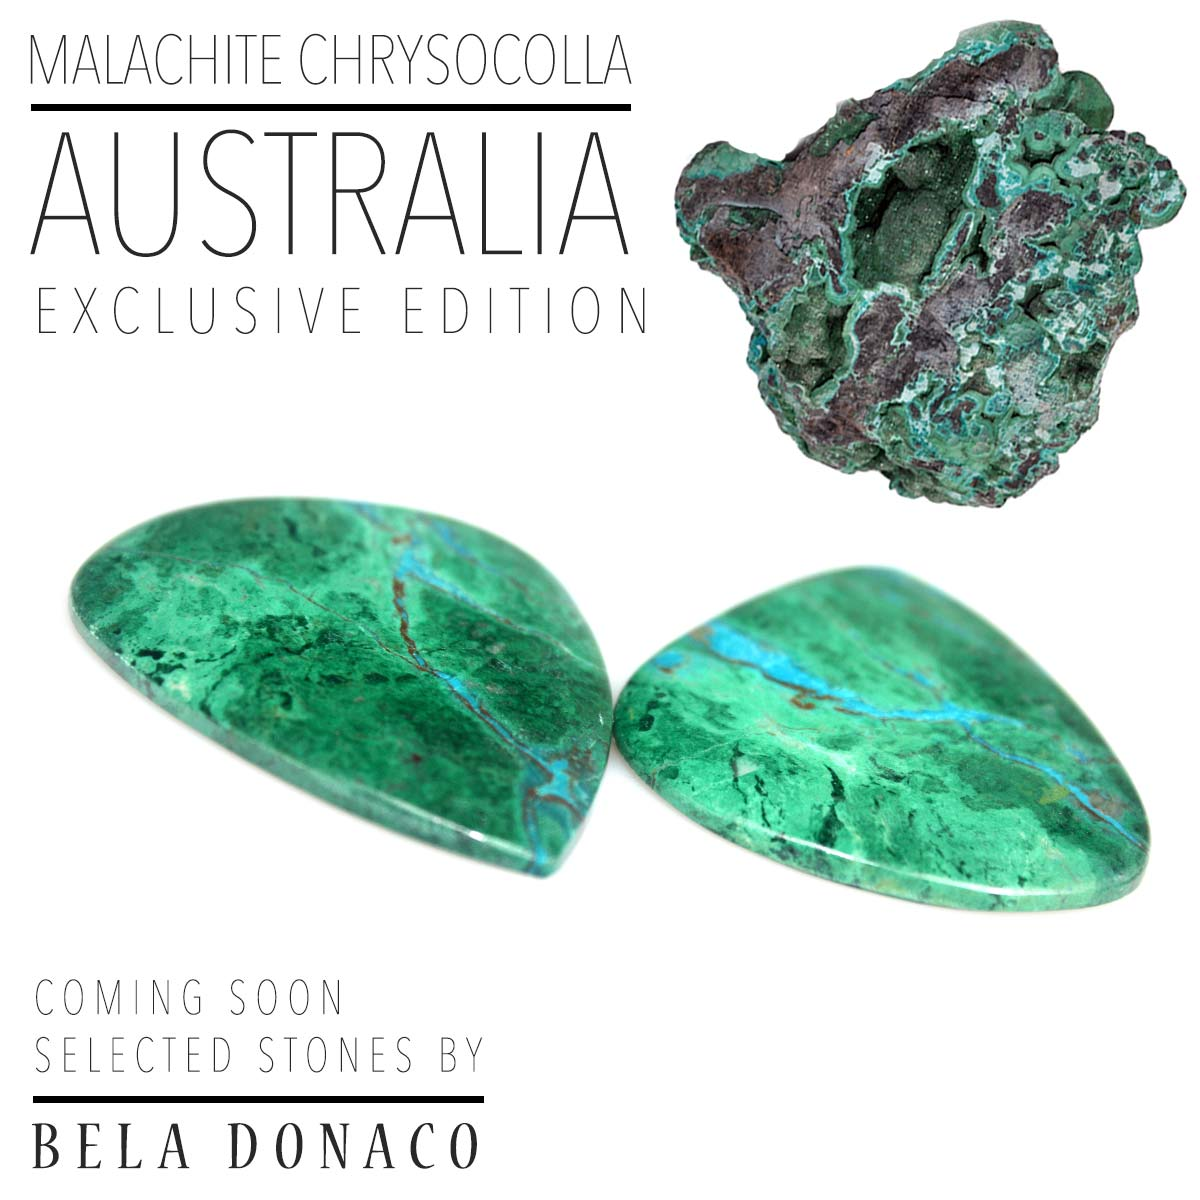 Malachite Chrysocolla from Australia